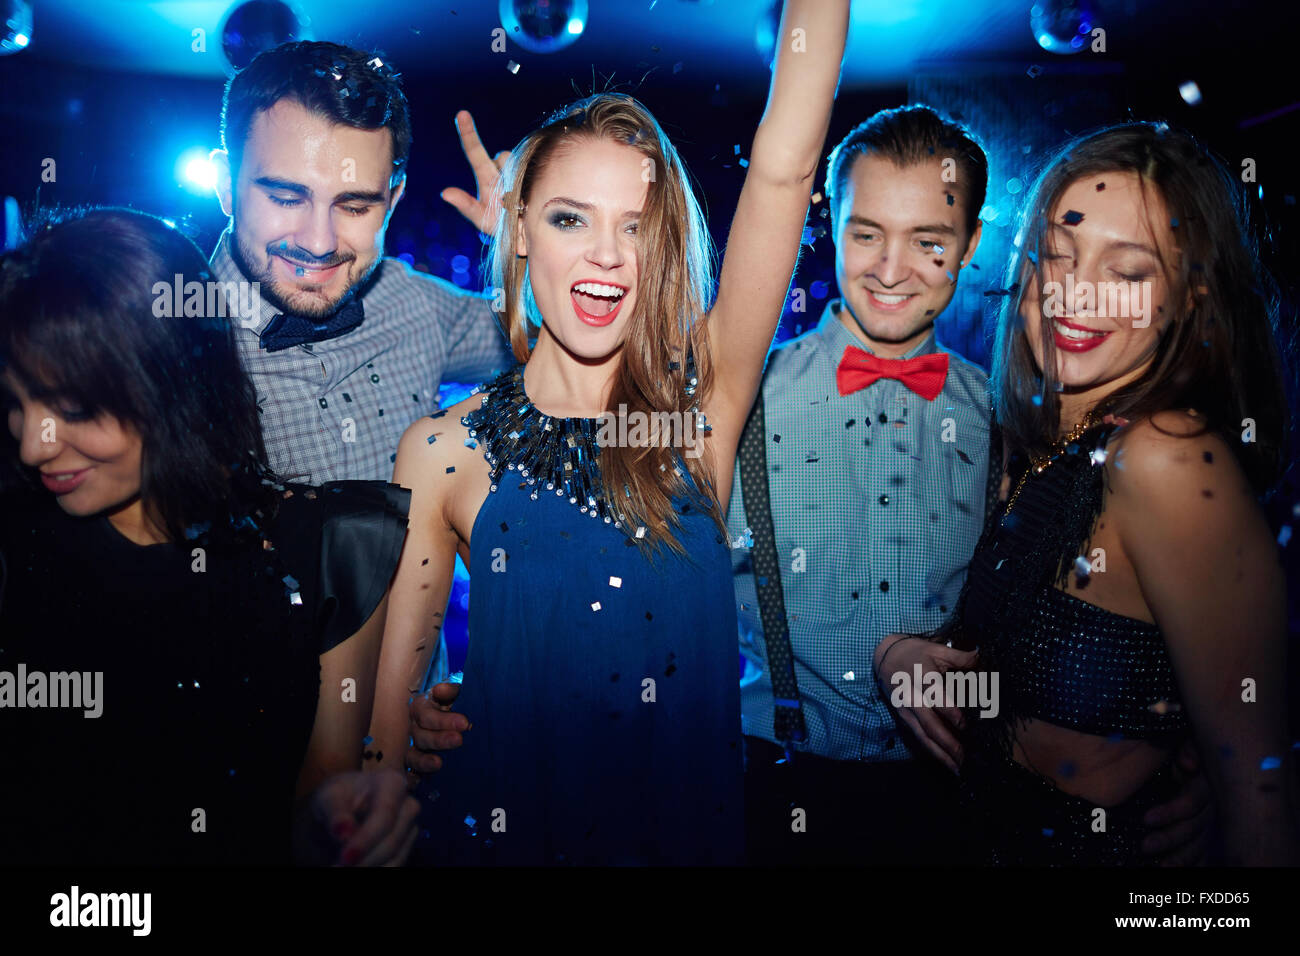 Cool party - Stock Image